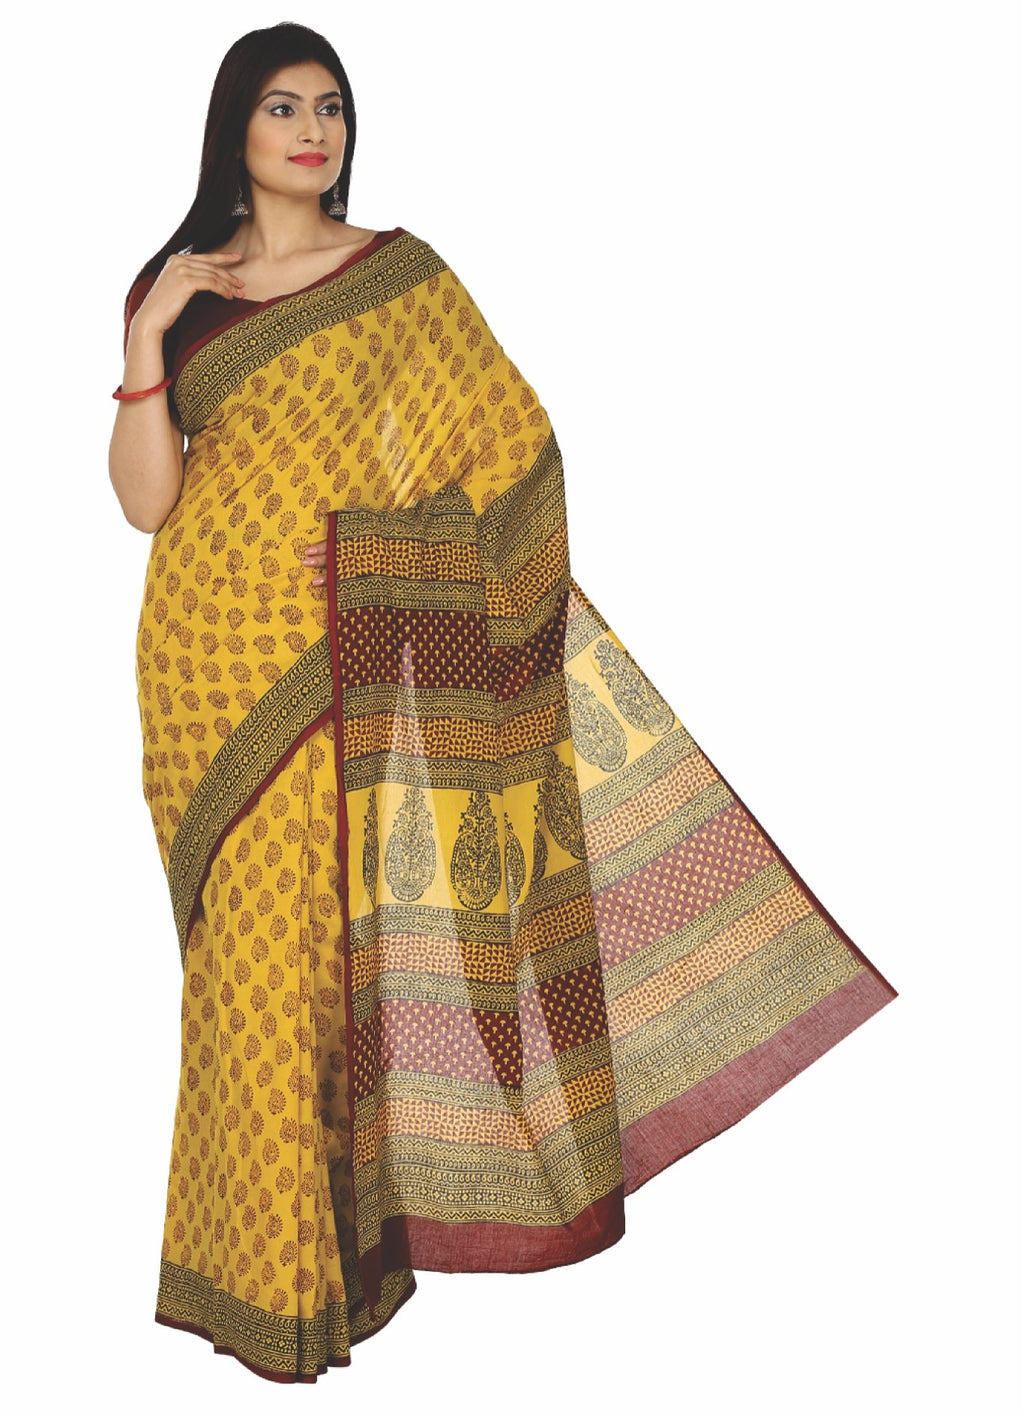 Kalakari India Yellow Bagh Hand block Print Handcrafted Cotton Saree-Saree-Kalakari India-ZIBASA0024-Bagh, Cotton, Geographical Indication, Hand Blocks, Hand Crafted, Heritage Prints, Natural Dyes, Sarees, Sustainable Fabrics-[Linen,Ethnic,wear,Fashionista,Handloom,Handicraft,Indigo,blockprint,block,print,Cotton,Chanderi,Blue, latest,classy,party,bollywood,trendy,summer,style,traditional,formal,elegant,unique,style,hand,block,print, dabu,booti,gift,present,glamorous,affordable,collectible,Sari,S